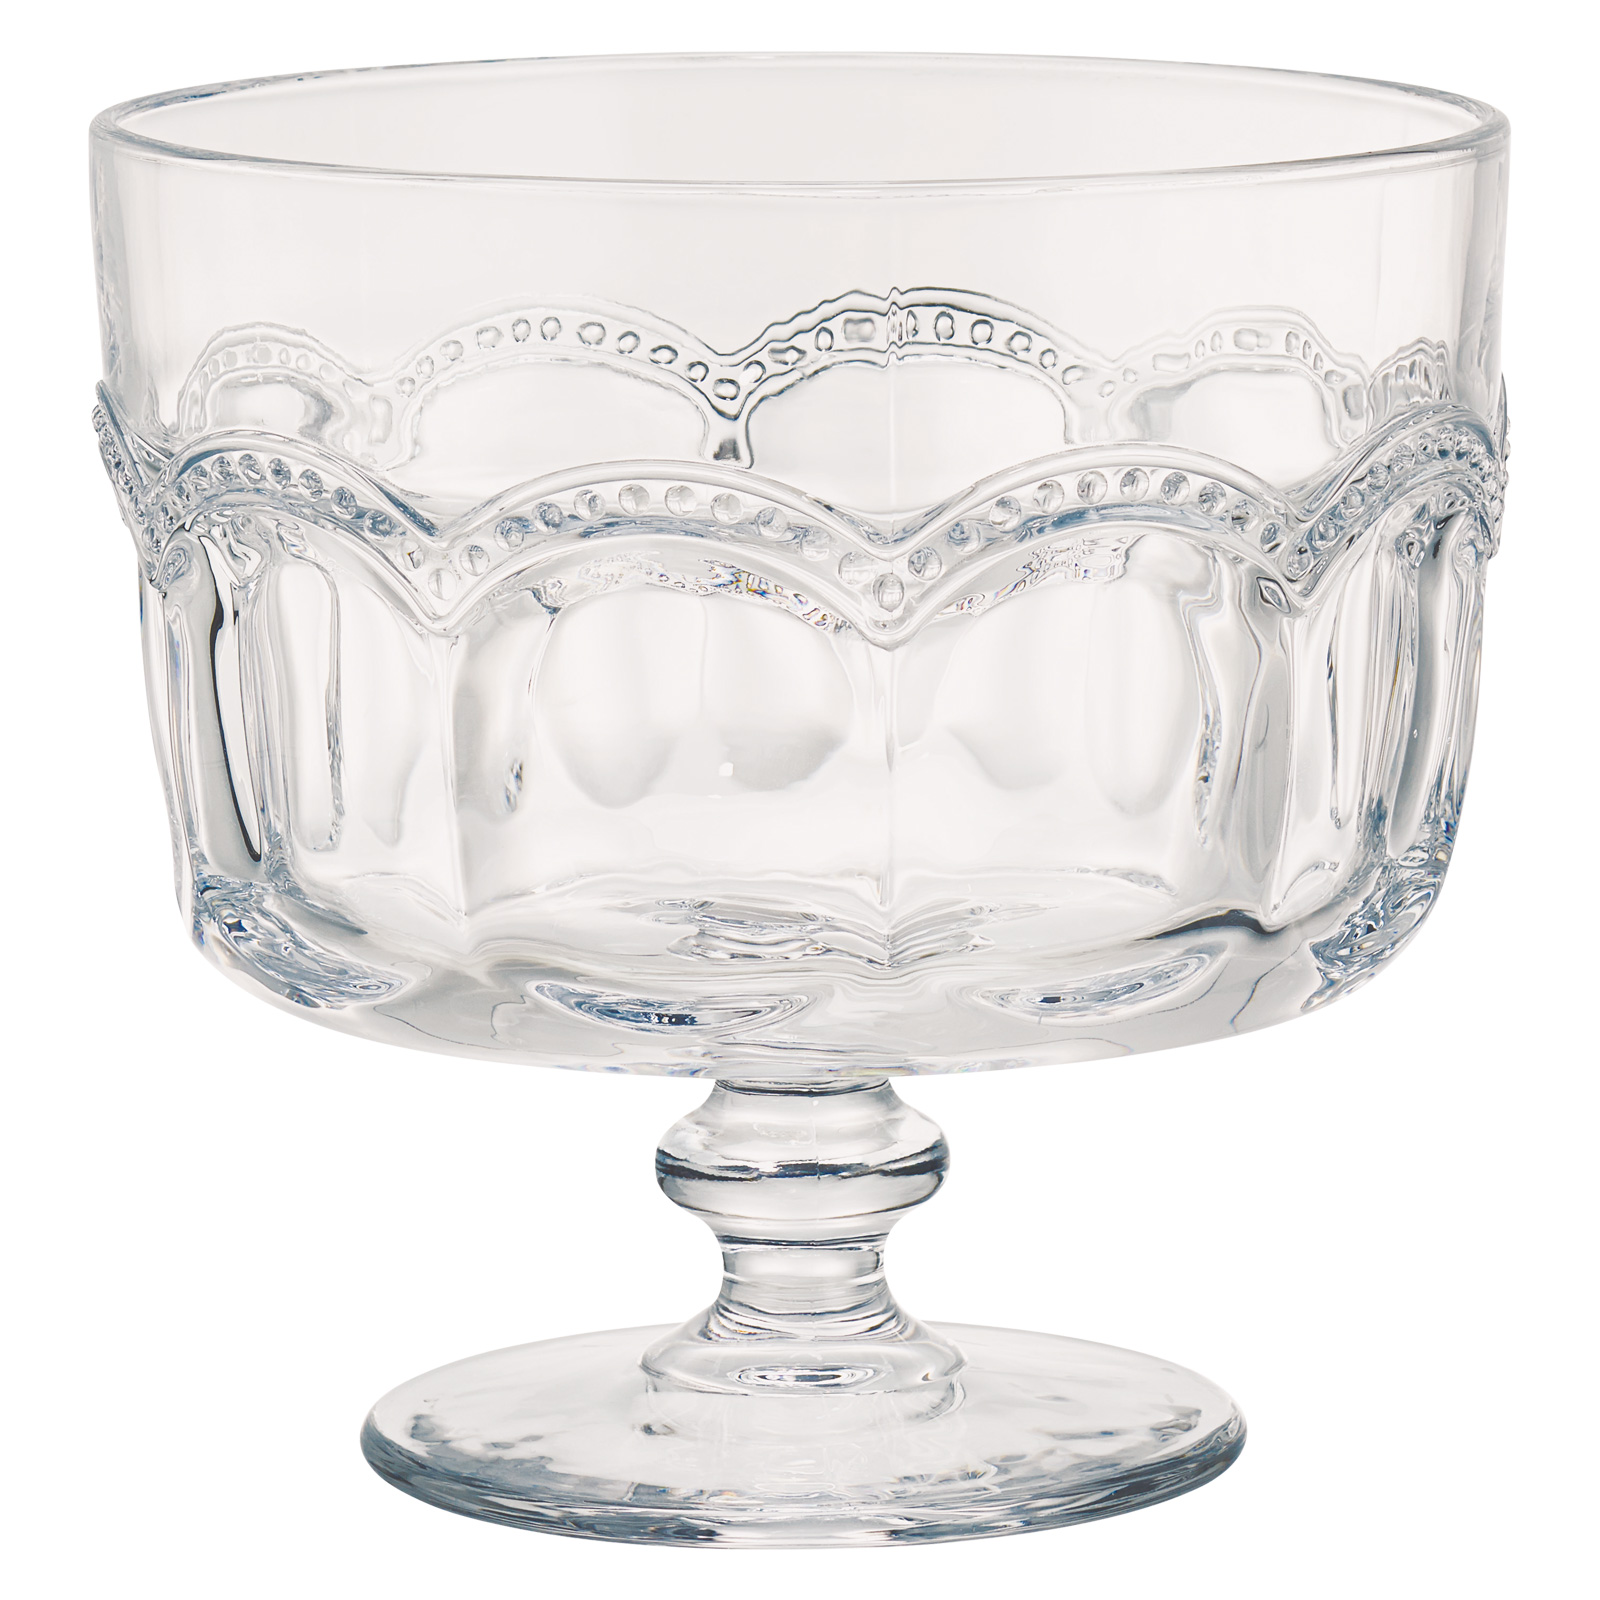 Pearl Ridge Trifle Bowl by Artland